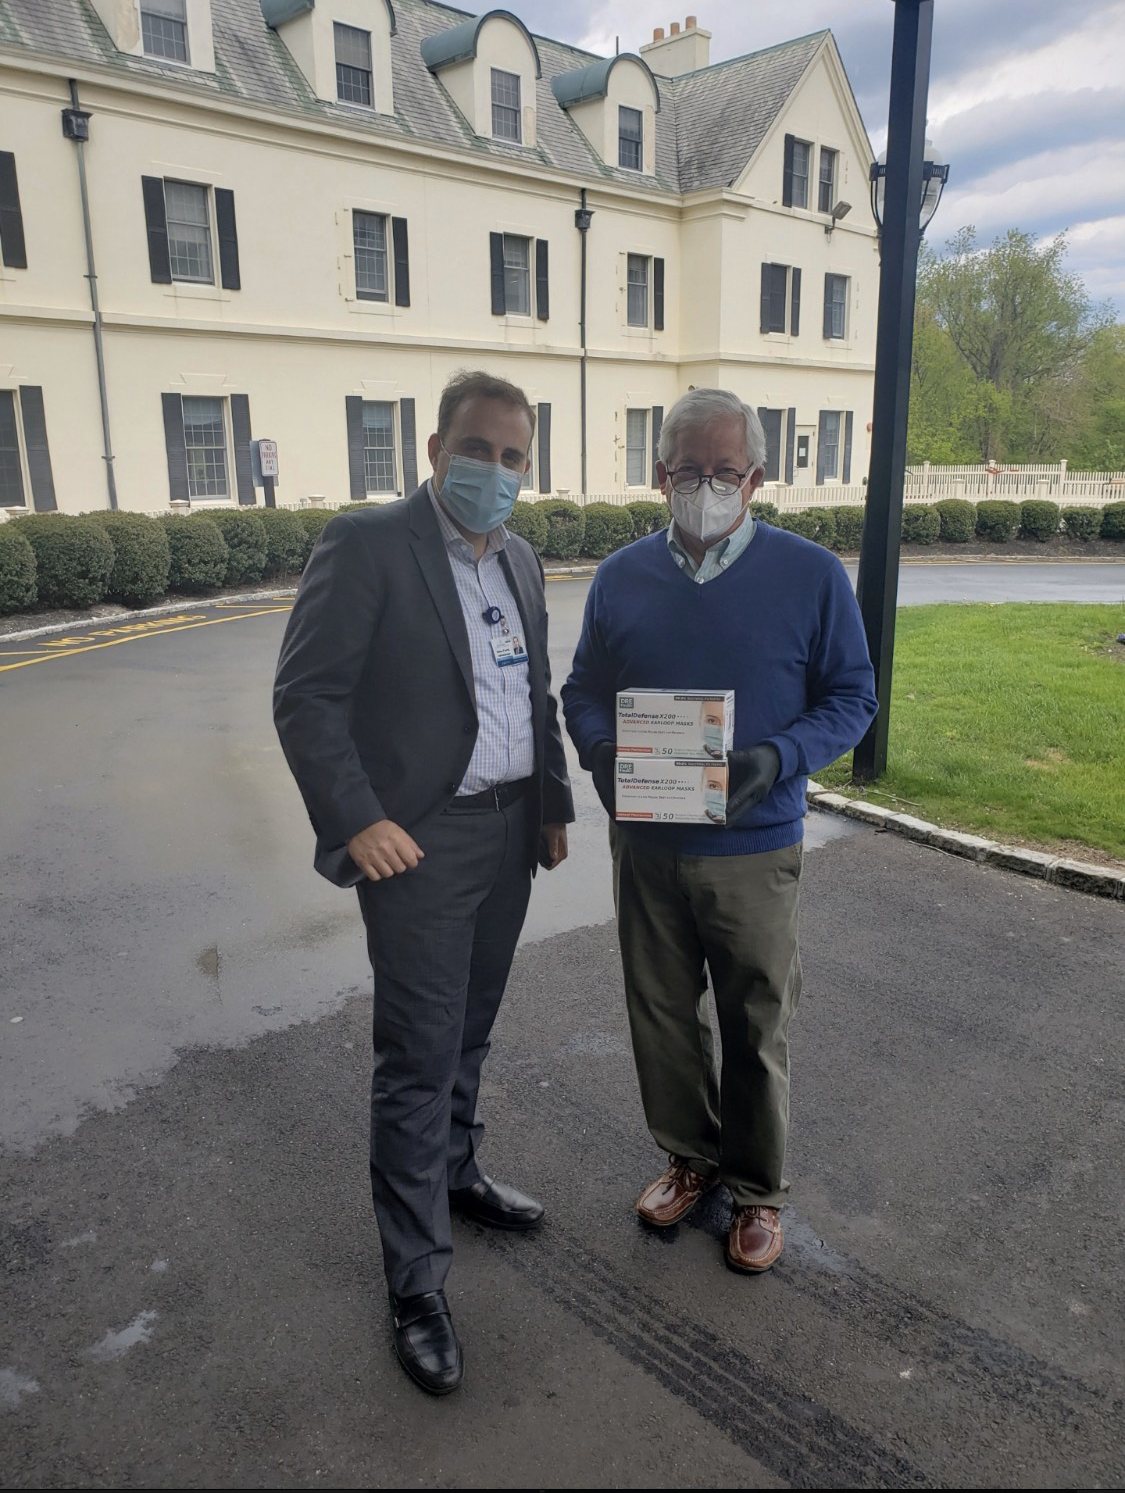 Assemblymember Lavine delivers face masks to the Glengariff Rehabilitation and Healthcare Center in Glen Cove. An assisted living facility that had been adversely affected by the Coronavirus pandemic.